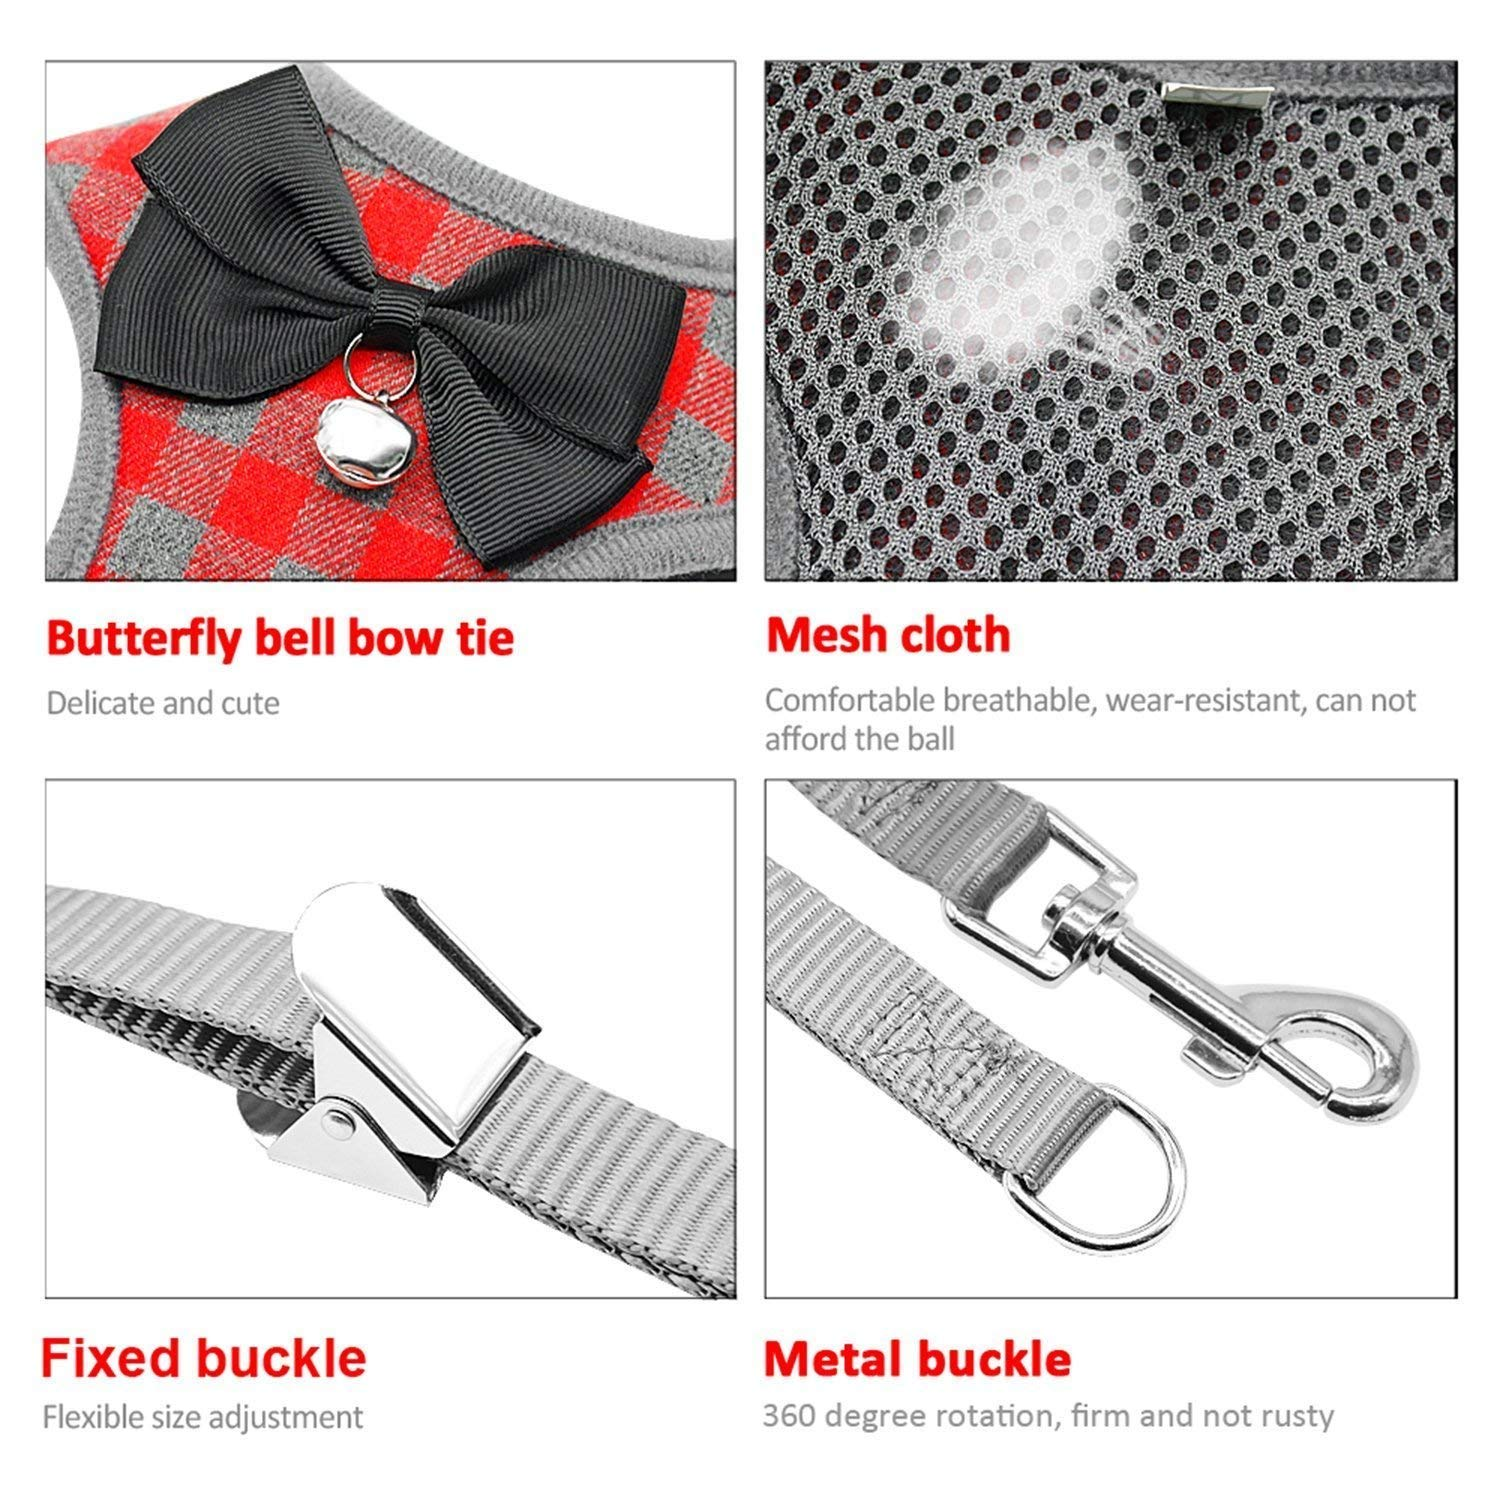 RYPET Small Dog Harness and Leash Set - No Pull Pet Harness with Soft Mesh Nylon Vest for Small Dogs and Cats Red M by RYPET (Image #4)